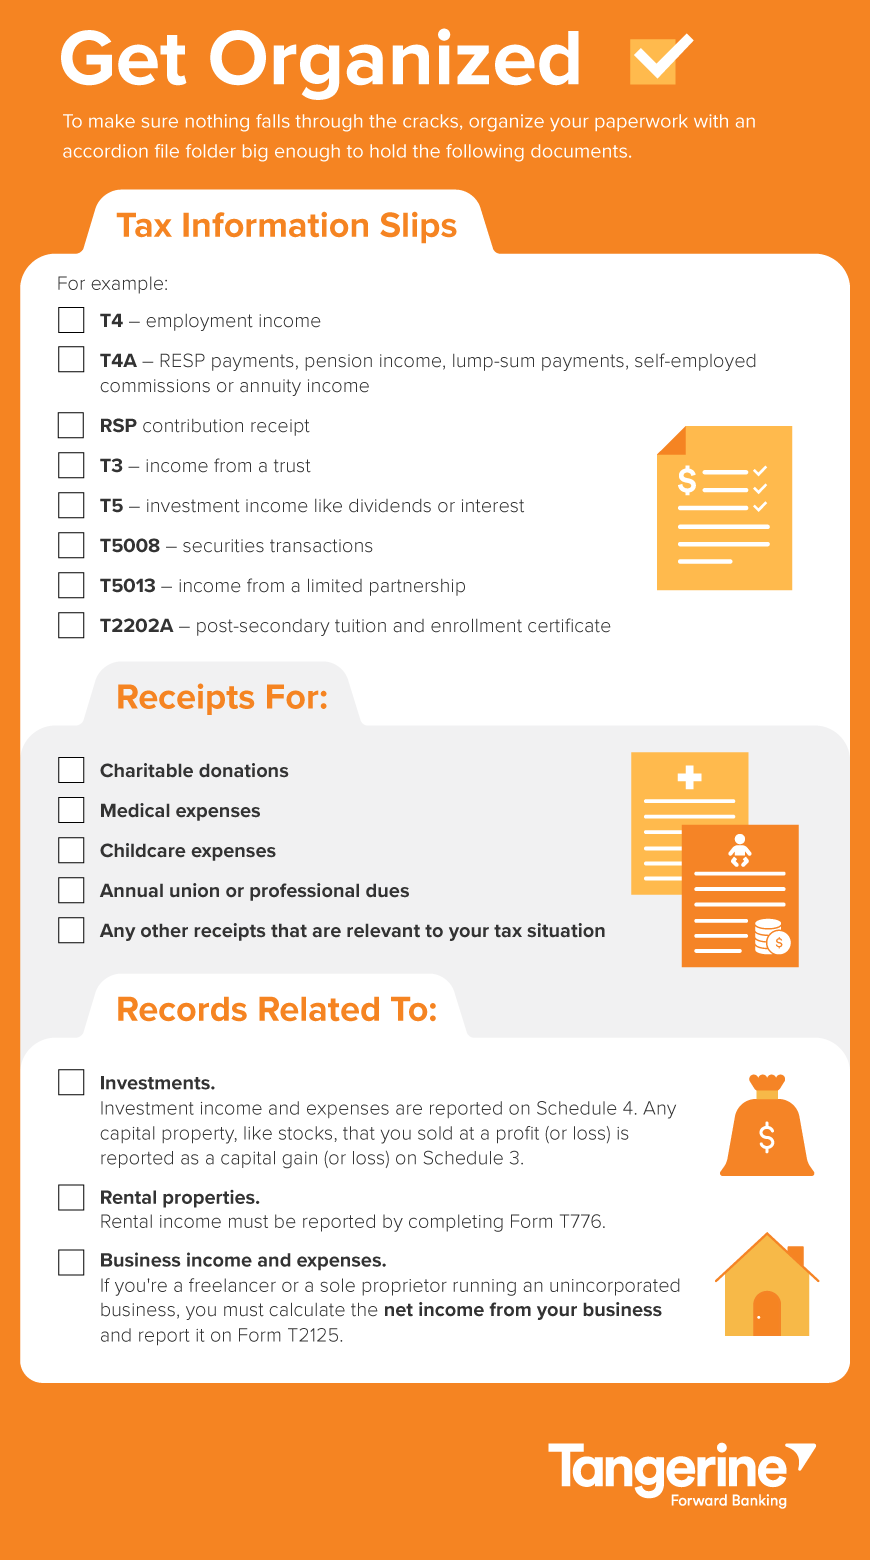 Simple Checklist To Make Filing Your Taxes Easier With Images Small Business Tax Business Tax Tax Organization